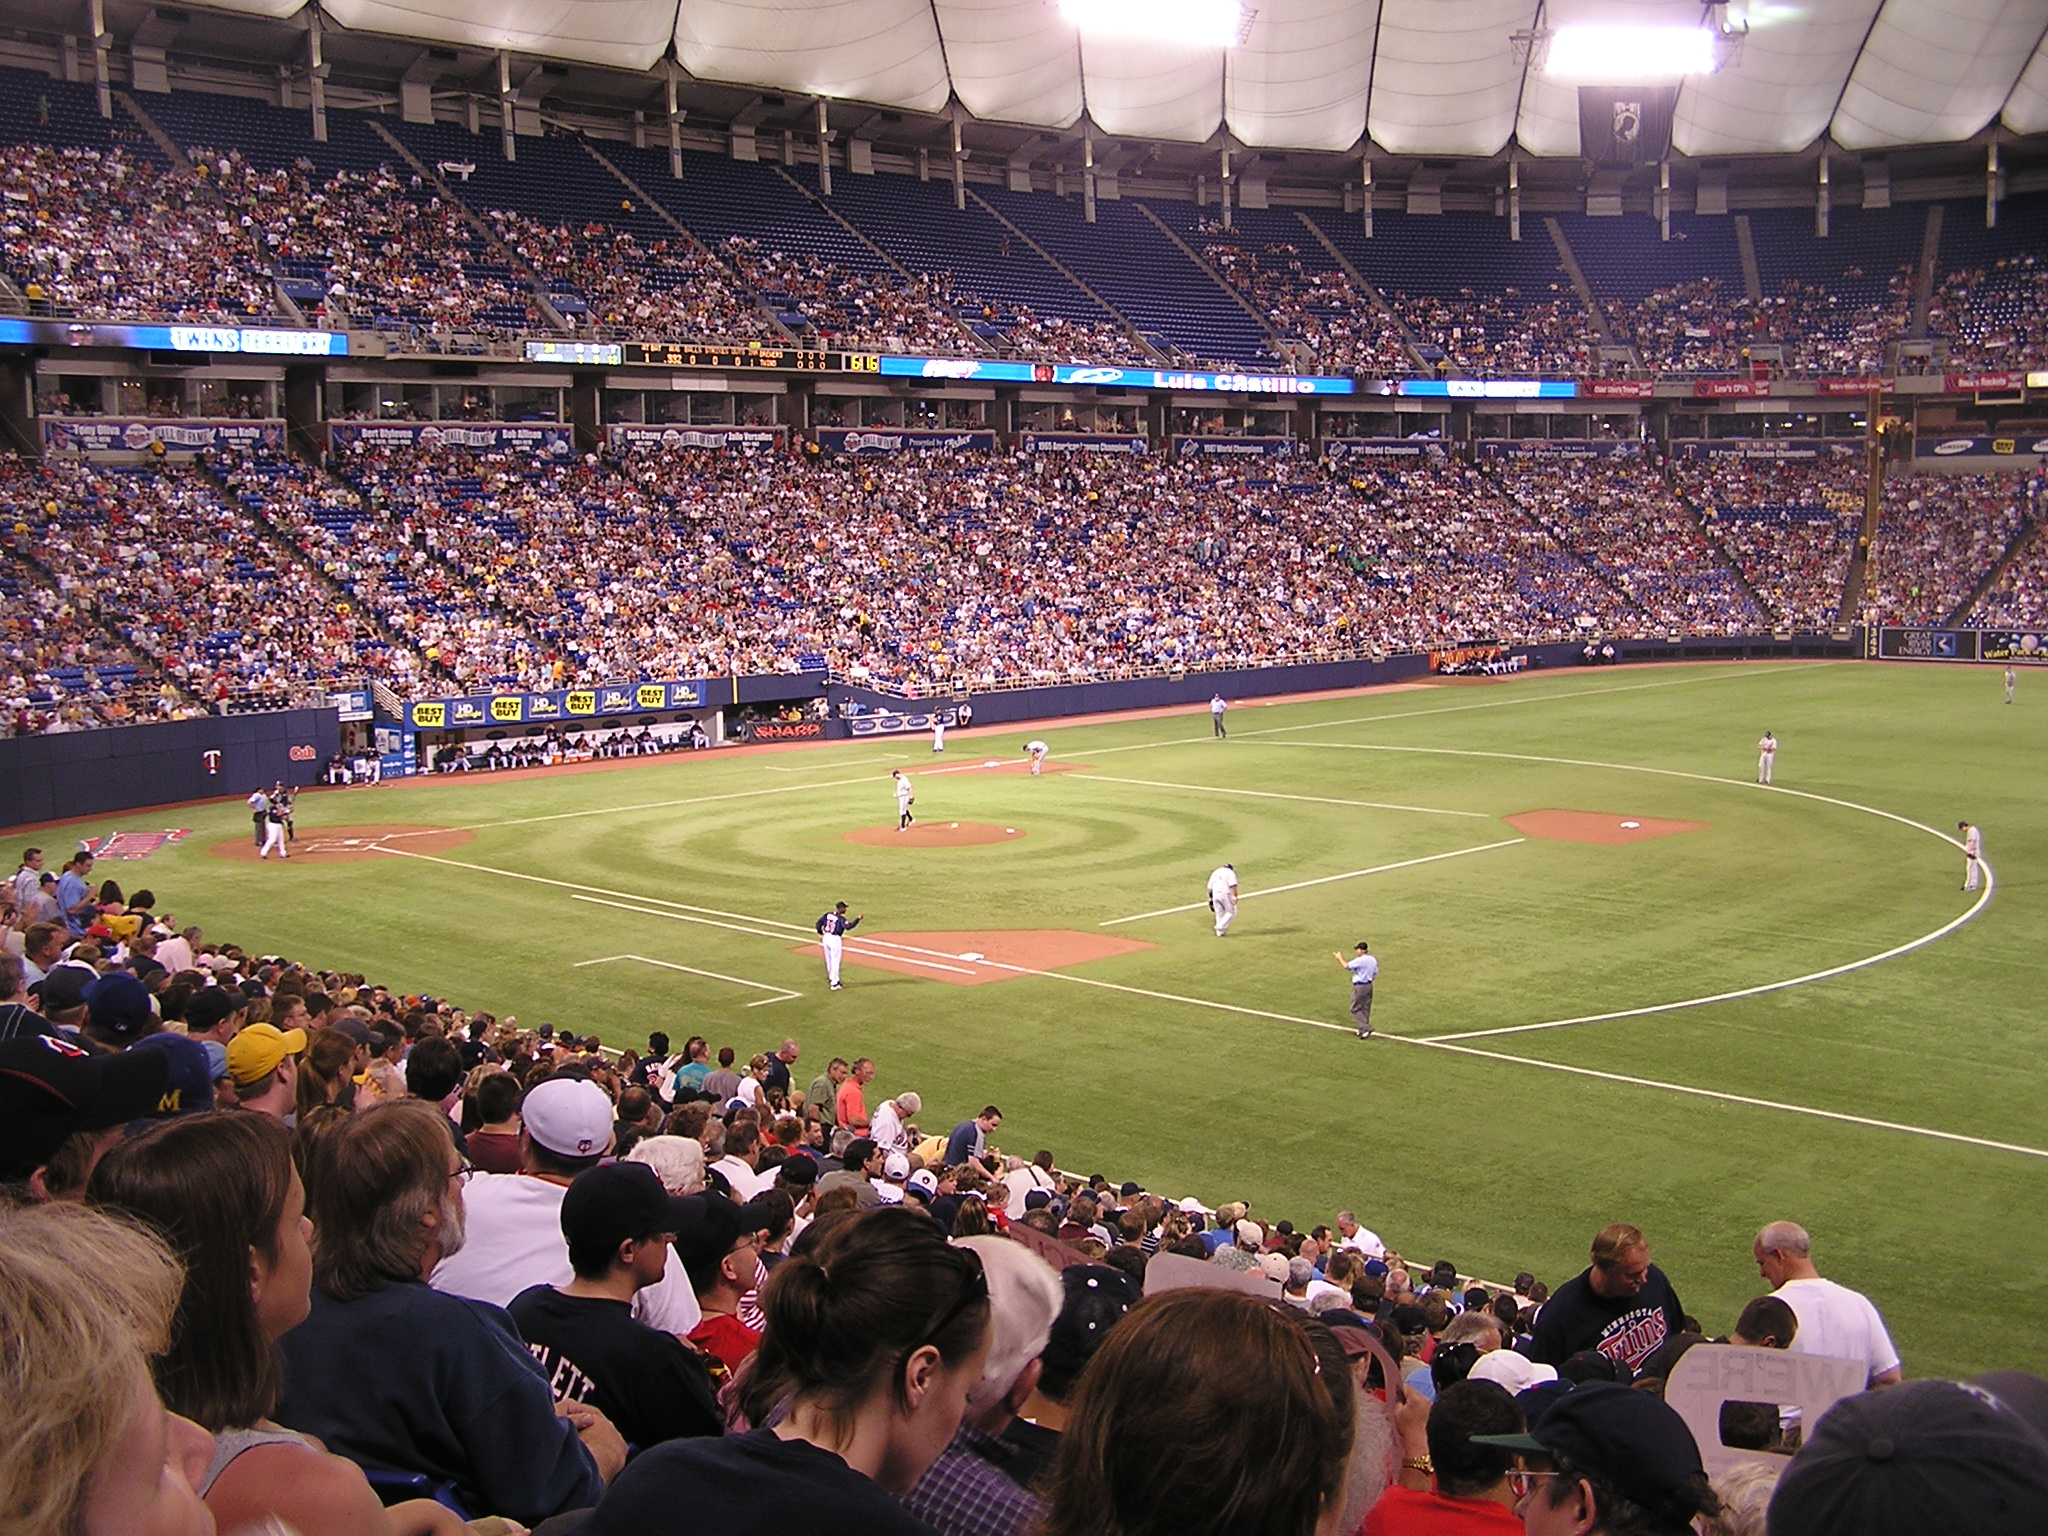 The HHH Metrodome from the 1st base side